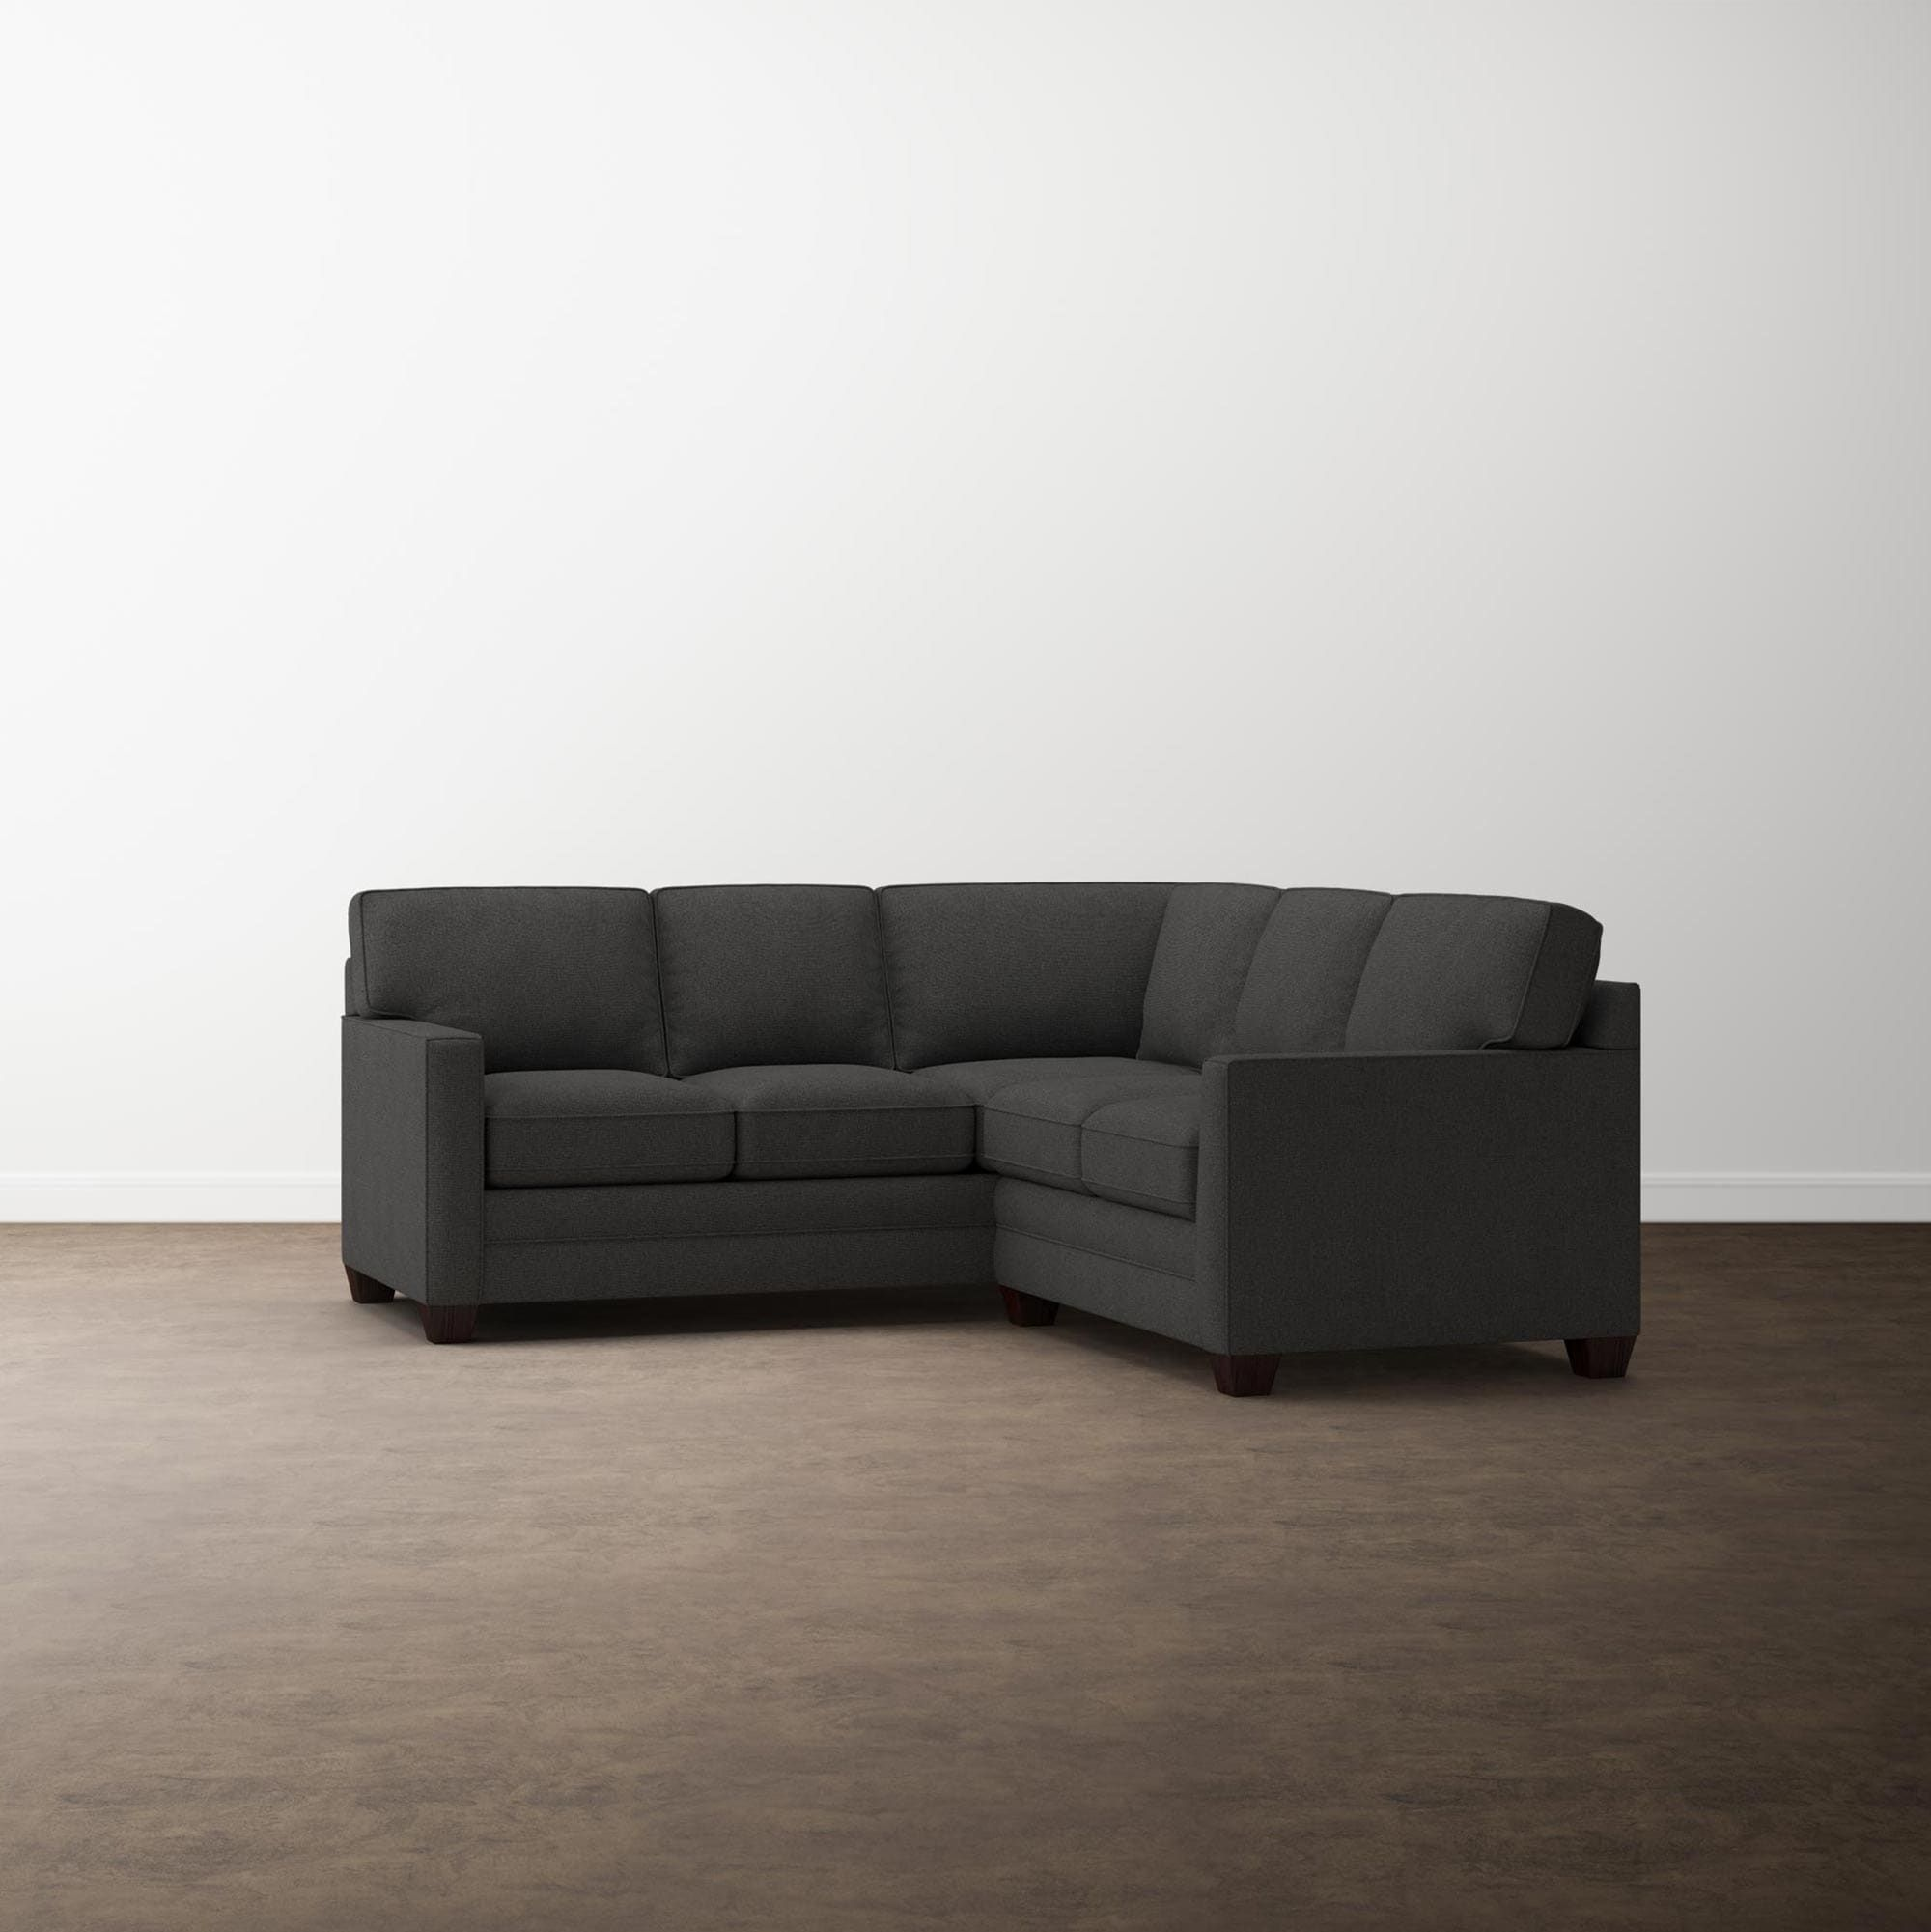 Aiden Small L Shaped Sectional Sofa Track Arm Fabric Sofas For Small Spaces Couch Set L Shaped Couch